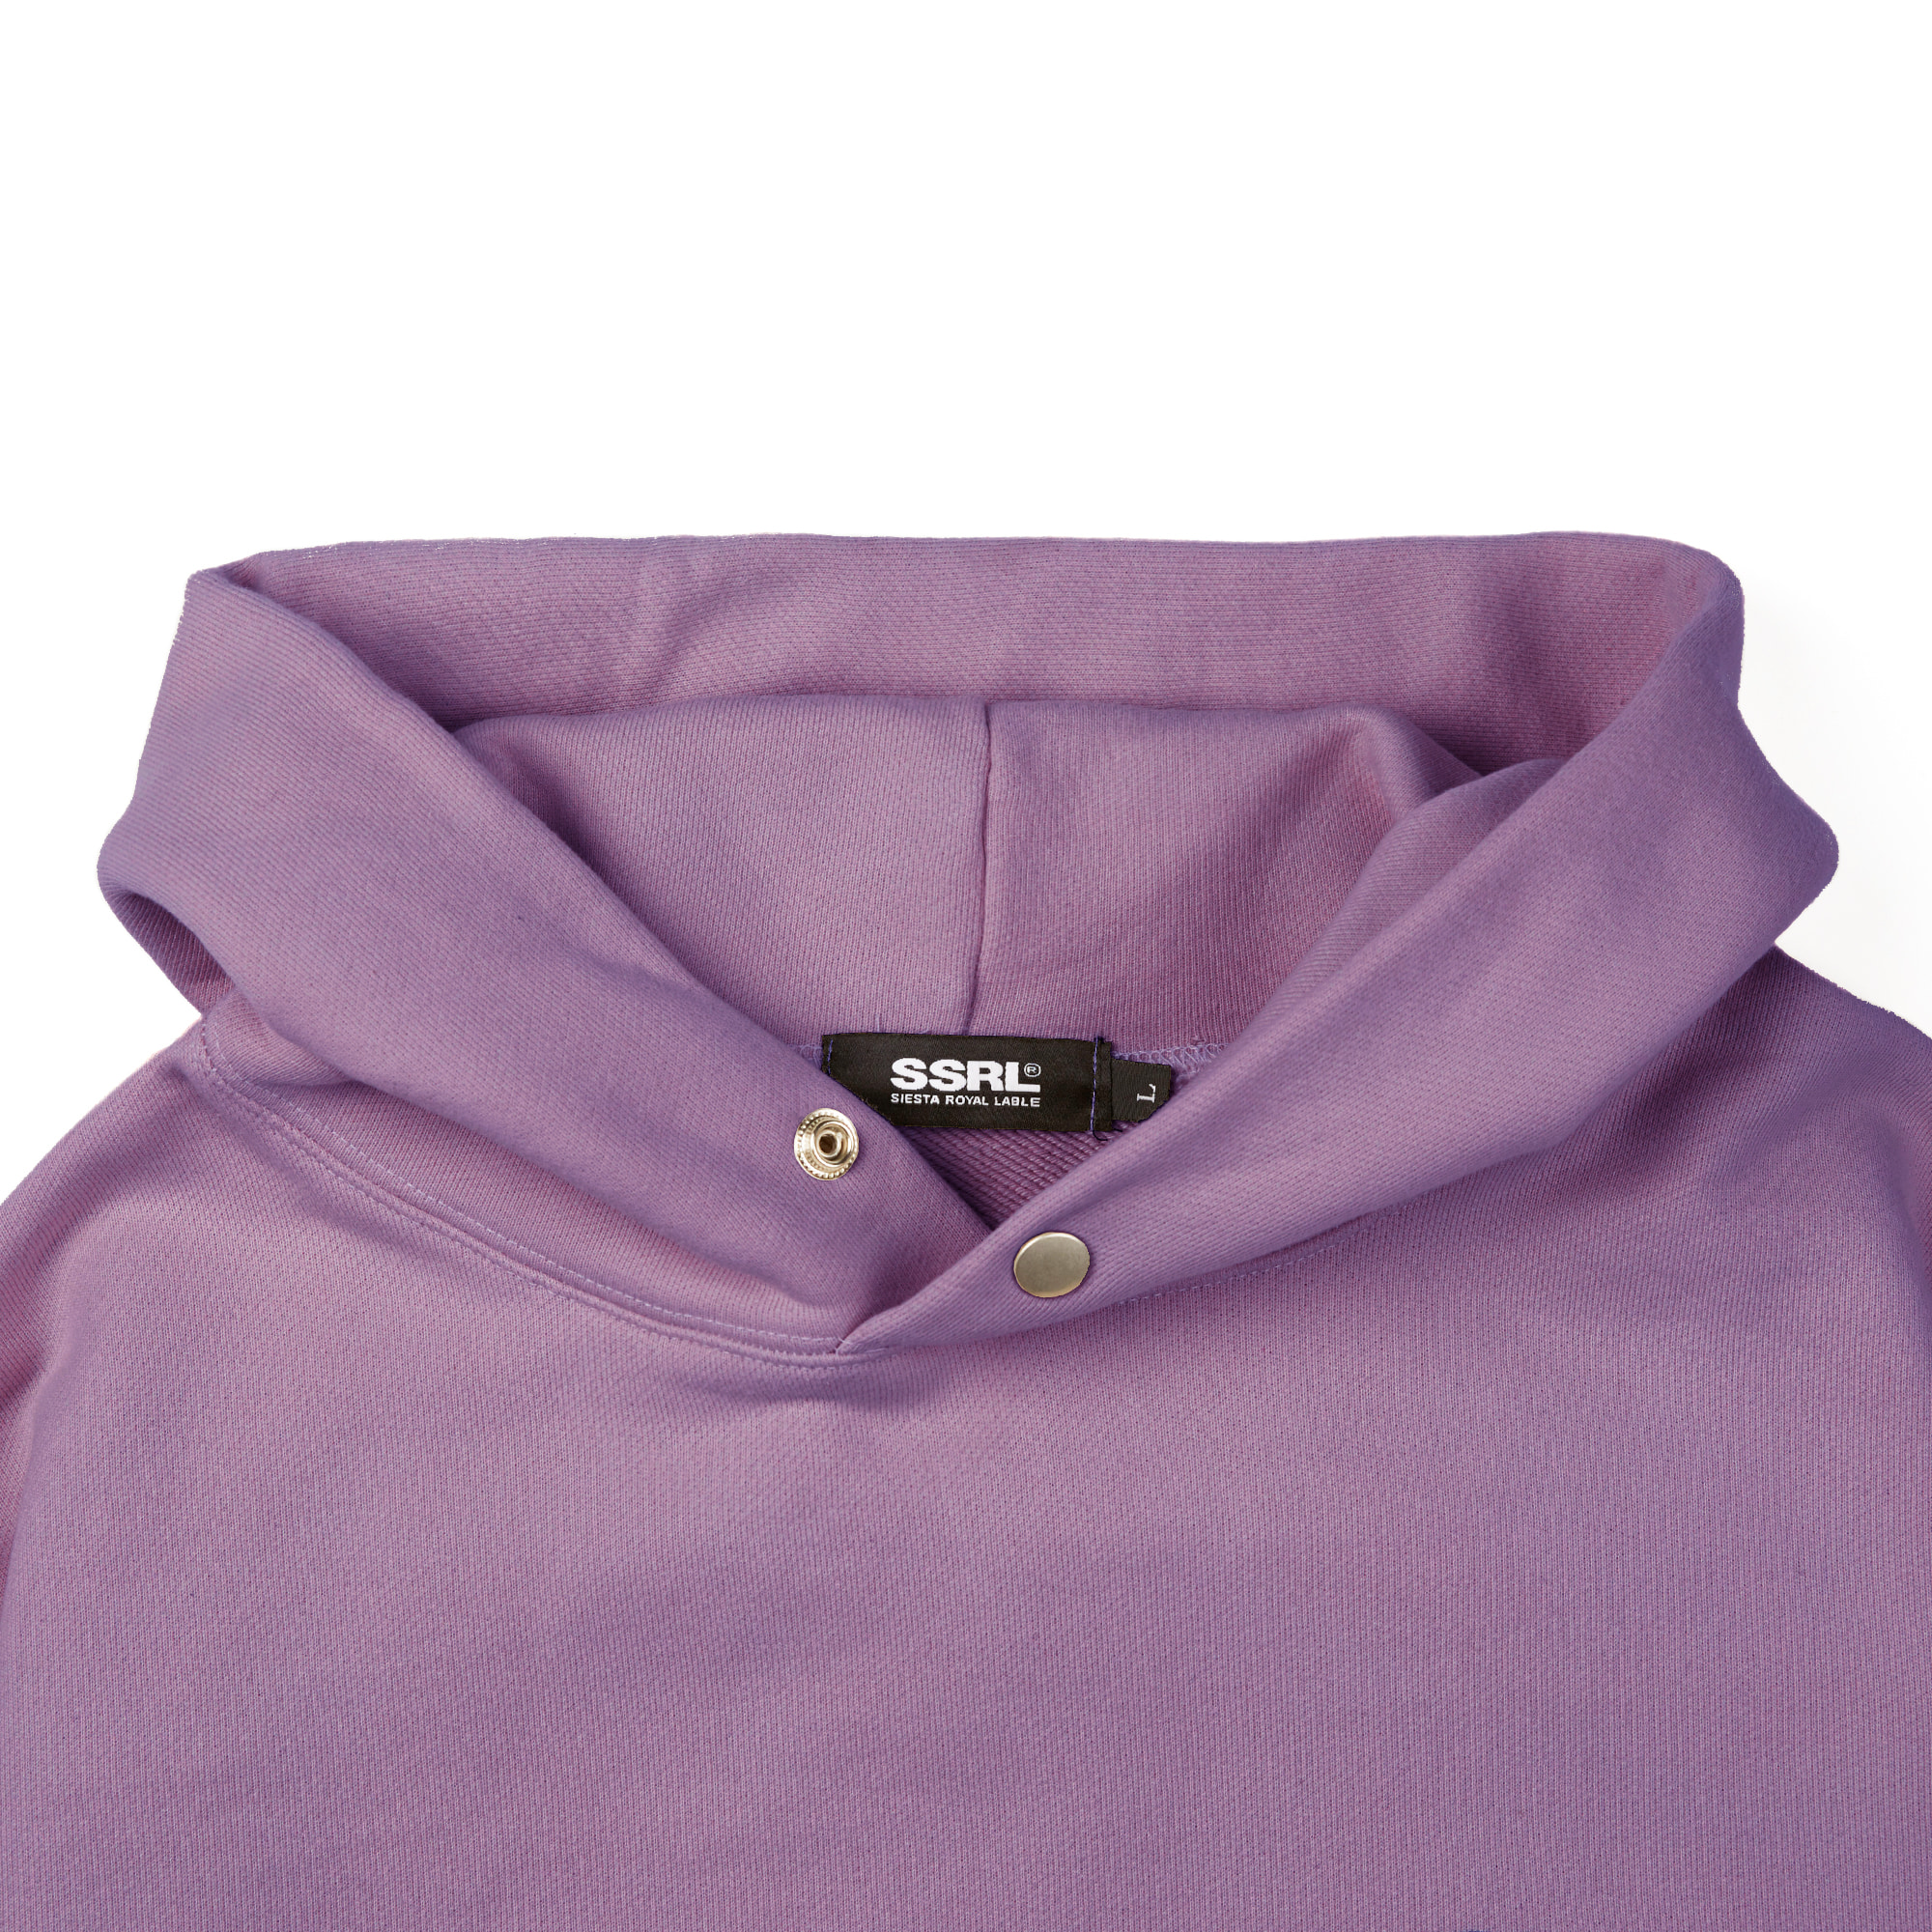 slant logo button hood / purple